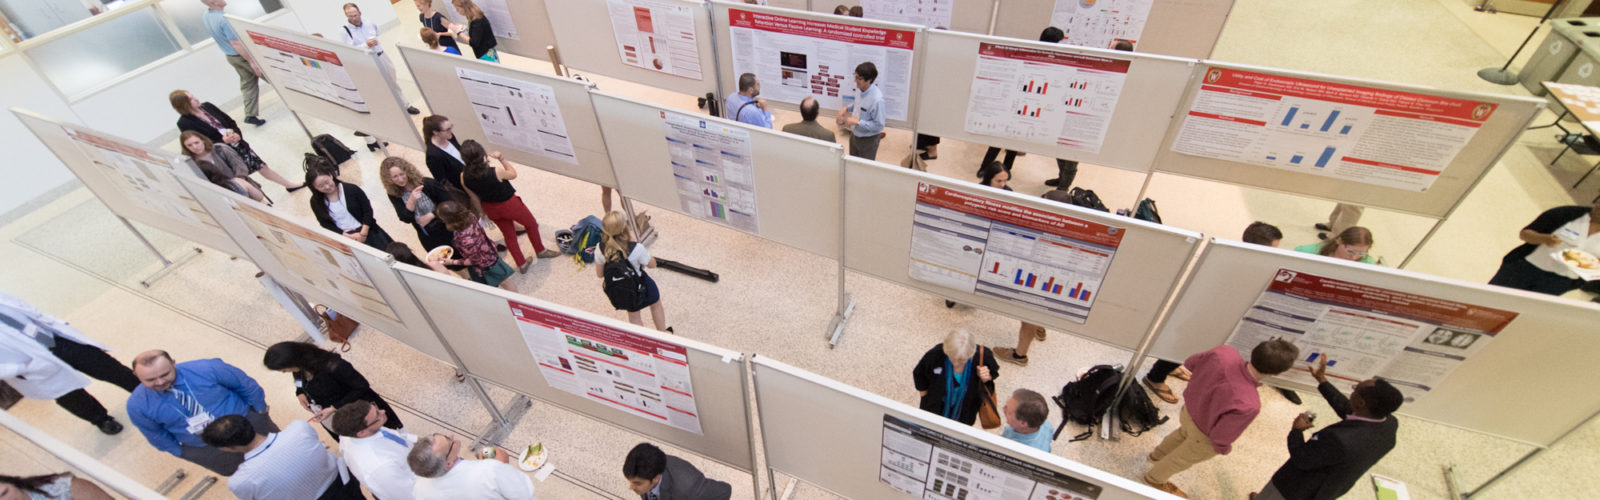 2017 Research Day